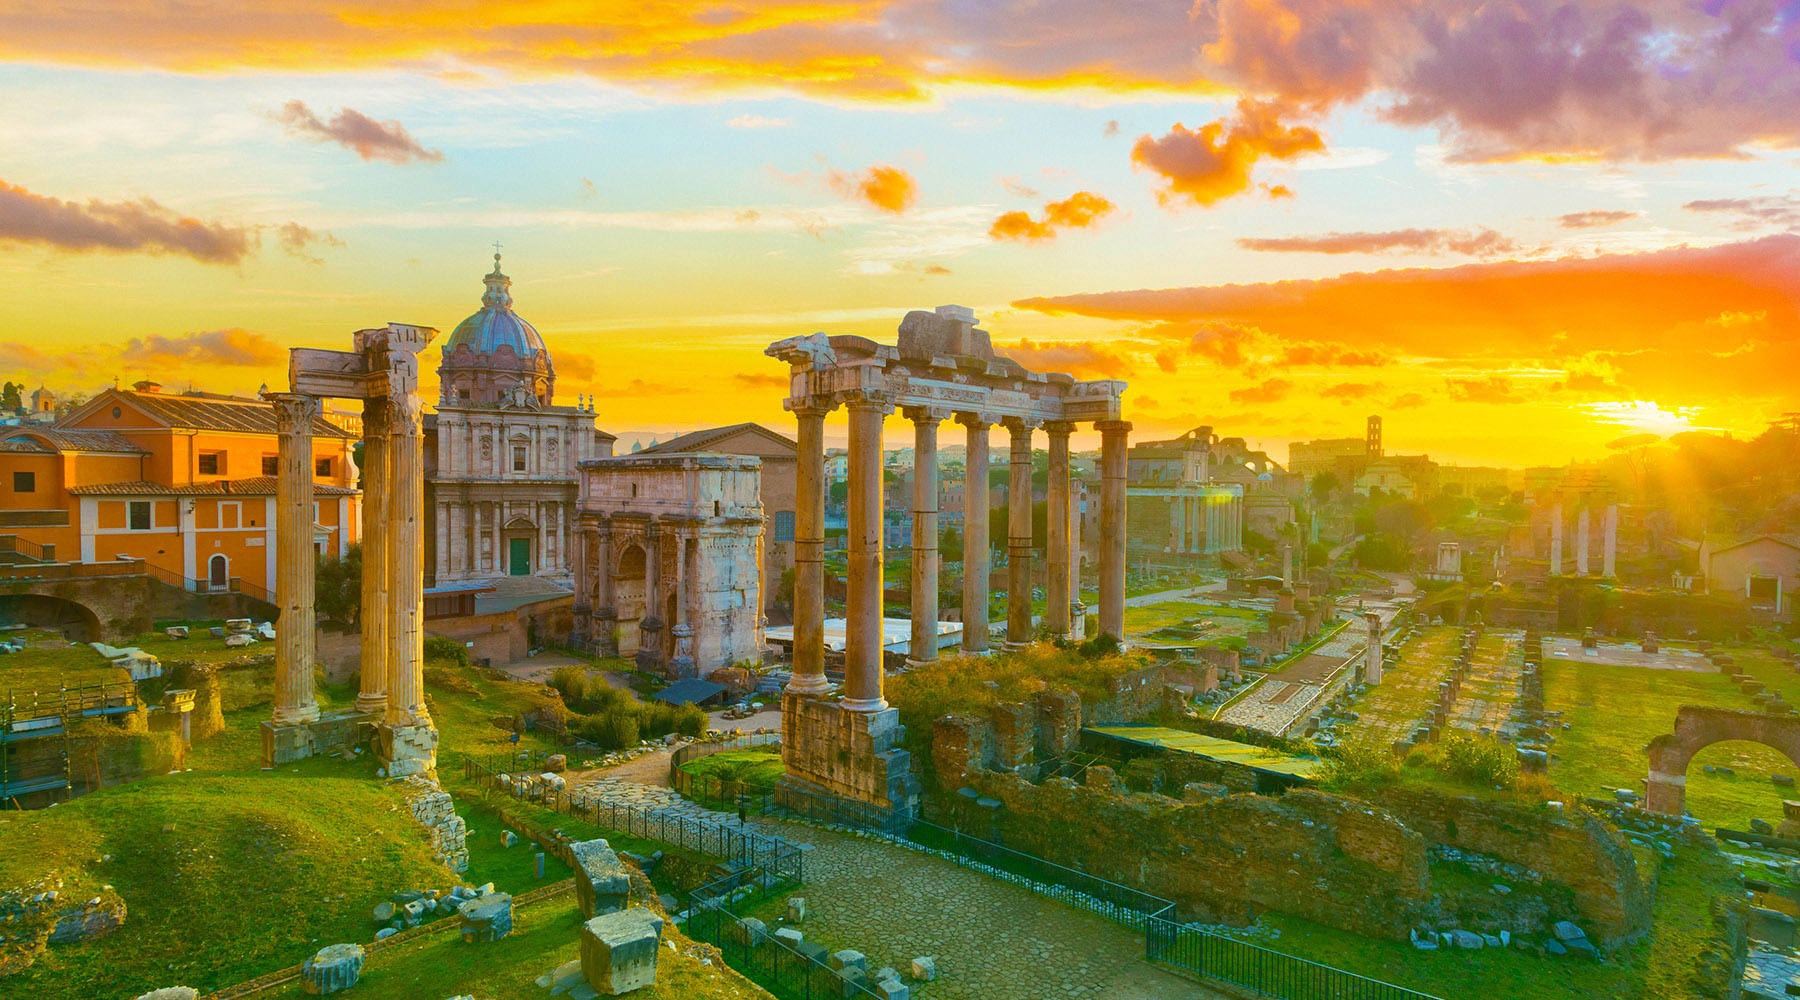 7-Night Med Voyage & 3-Night Post Rome Stay